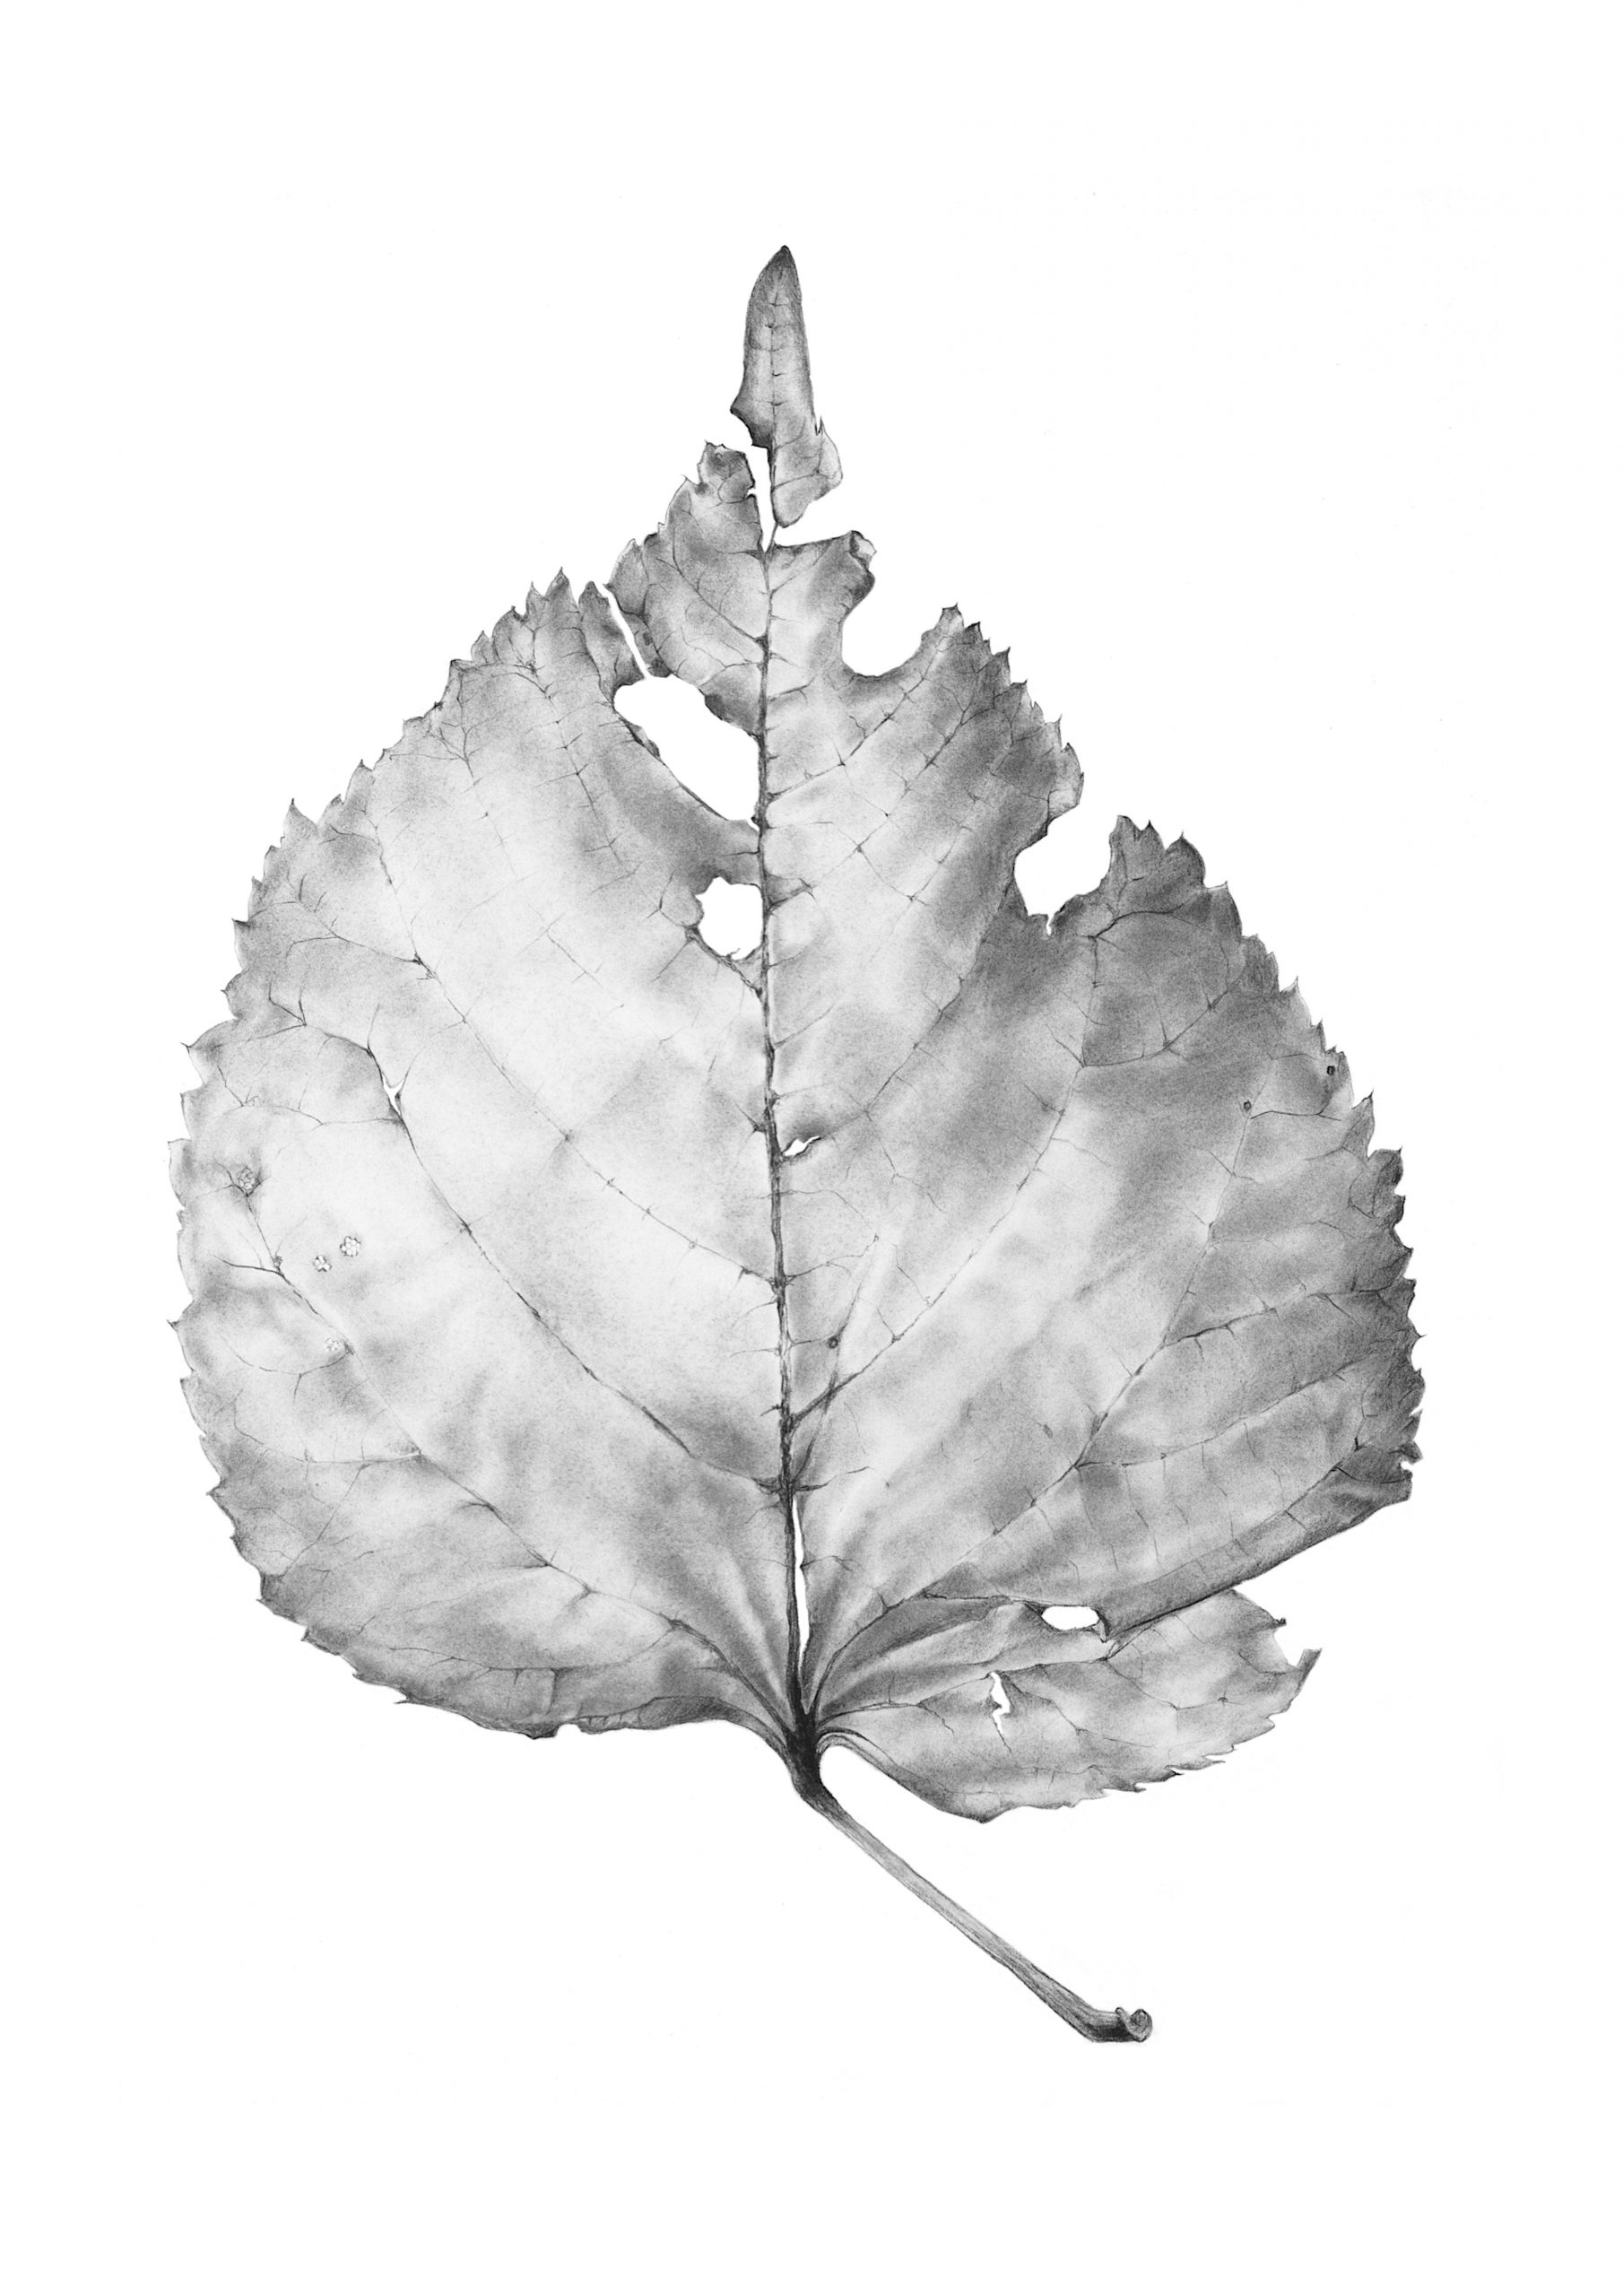 Tilia x europea leaf drawing